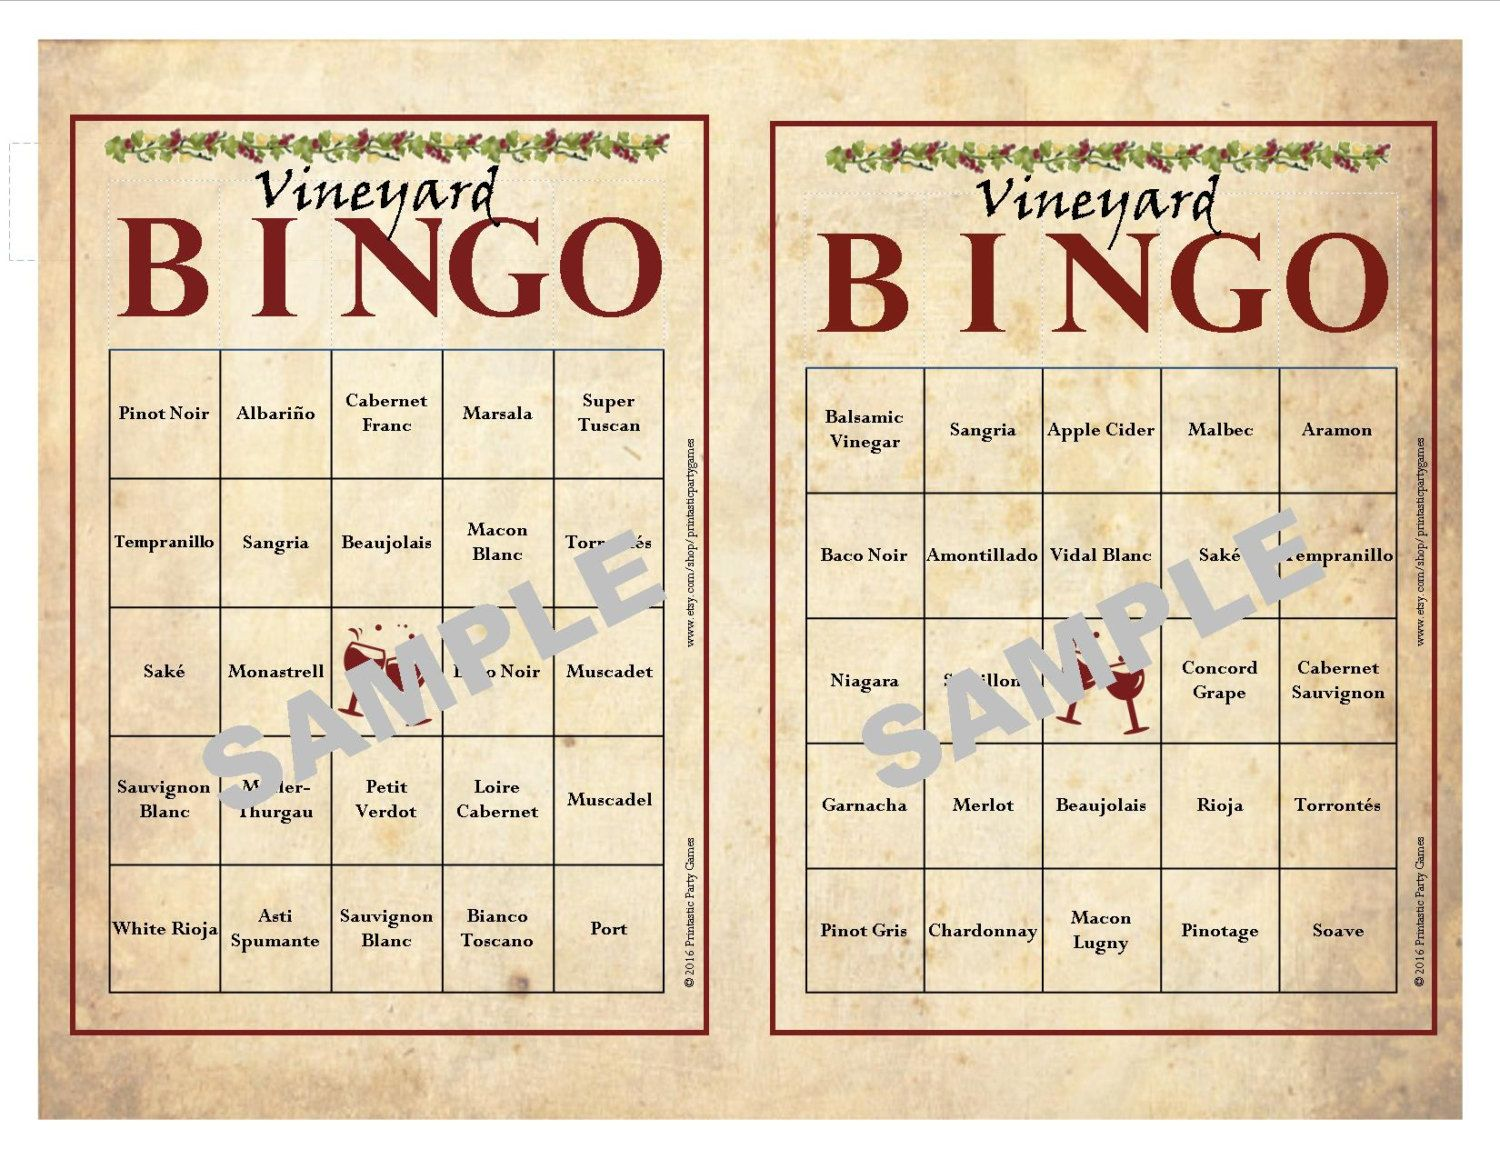 photo regarding Wine Tasting Games Printable titled 30 Printable Winery BINGO Playing cards, Immediate Obtain, Wine